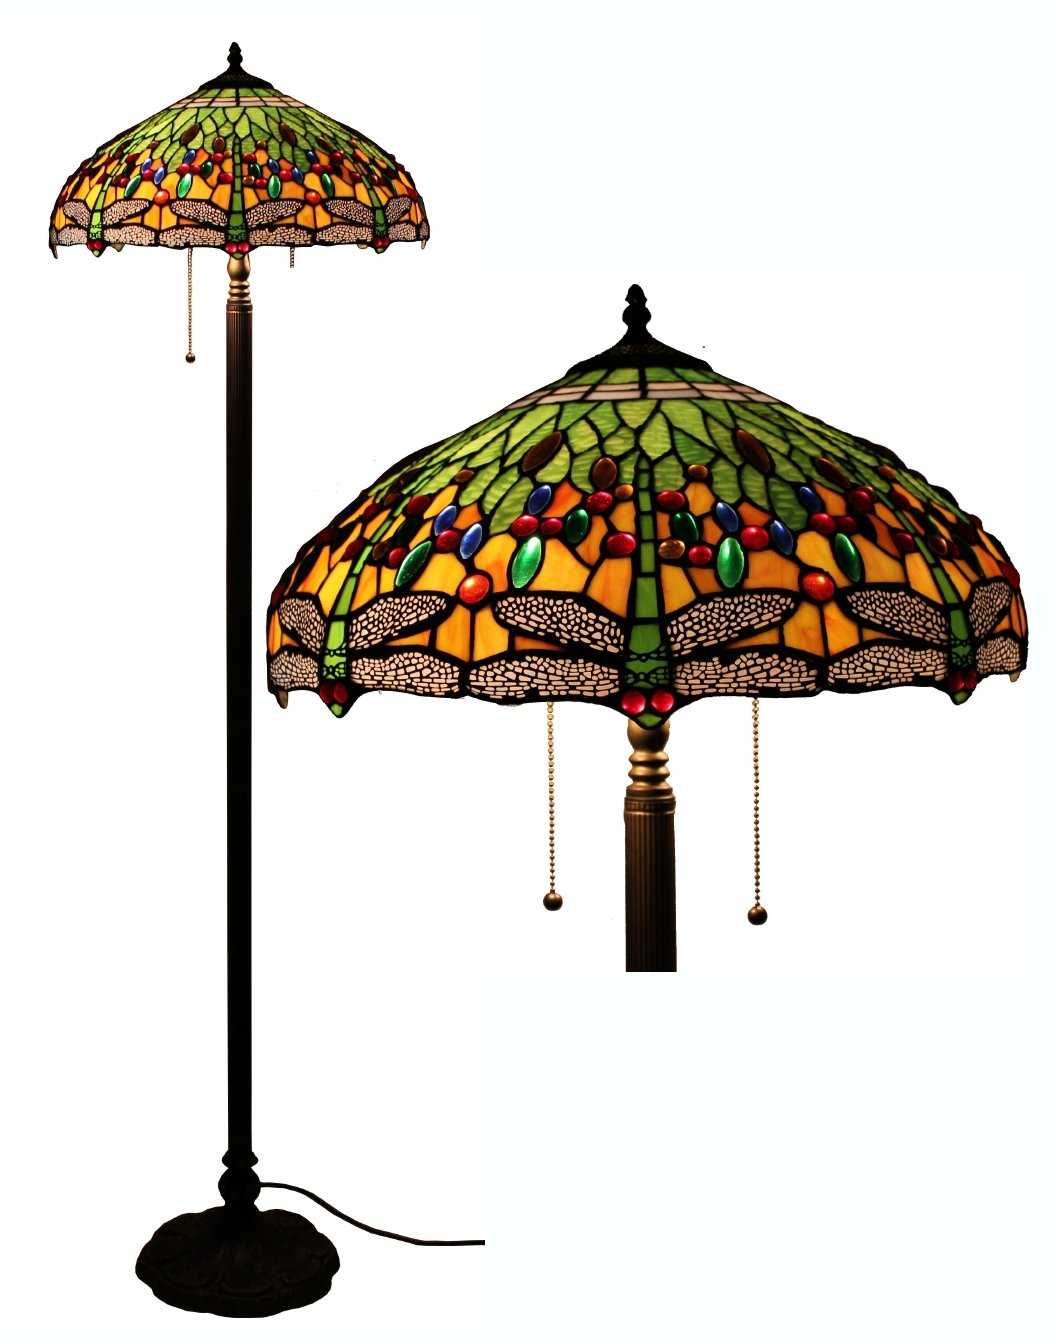 Tiffany Style Dragonfly Green Floor Lamp, 64 Inch by 18 Inch by Amora Lighting